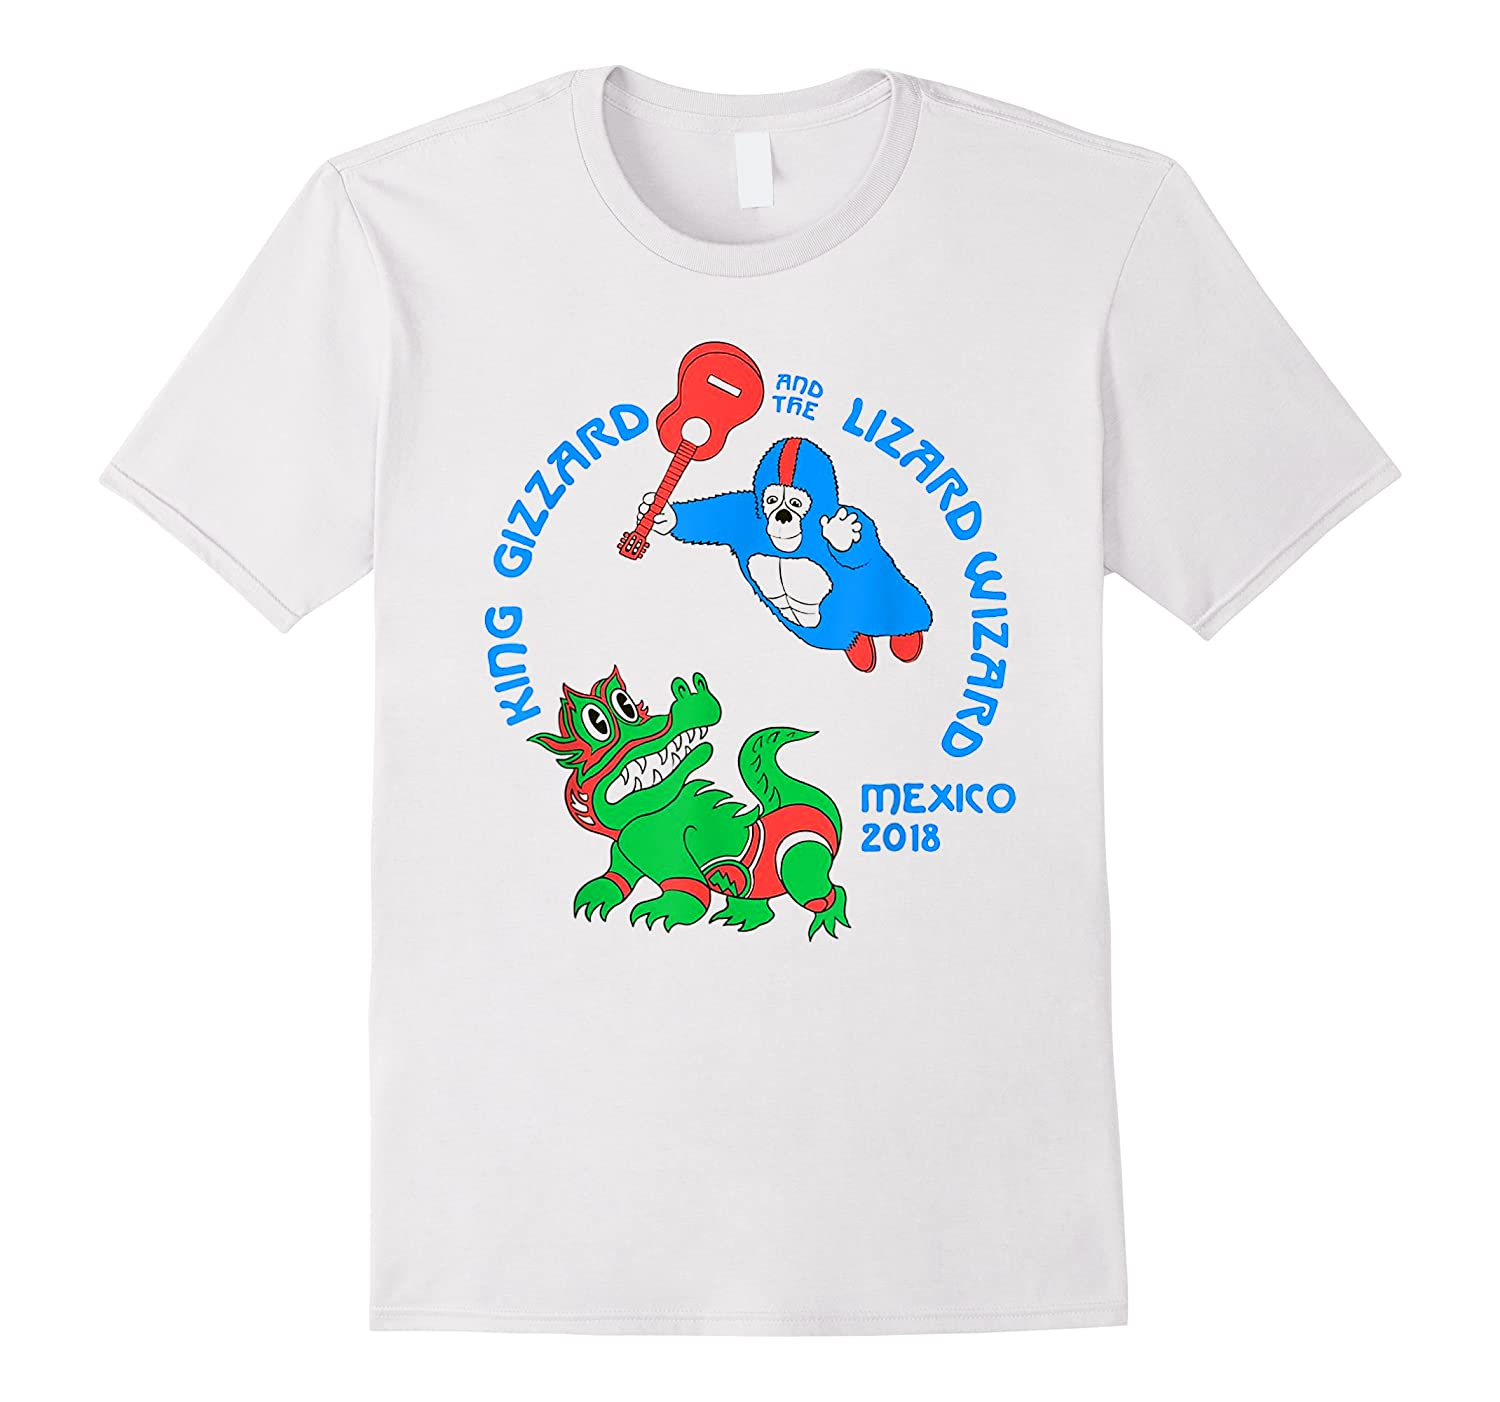 King Gizzard And The Lizard Wizard Shirts